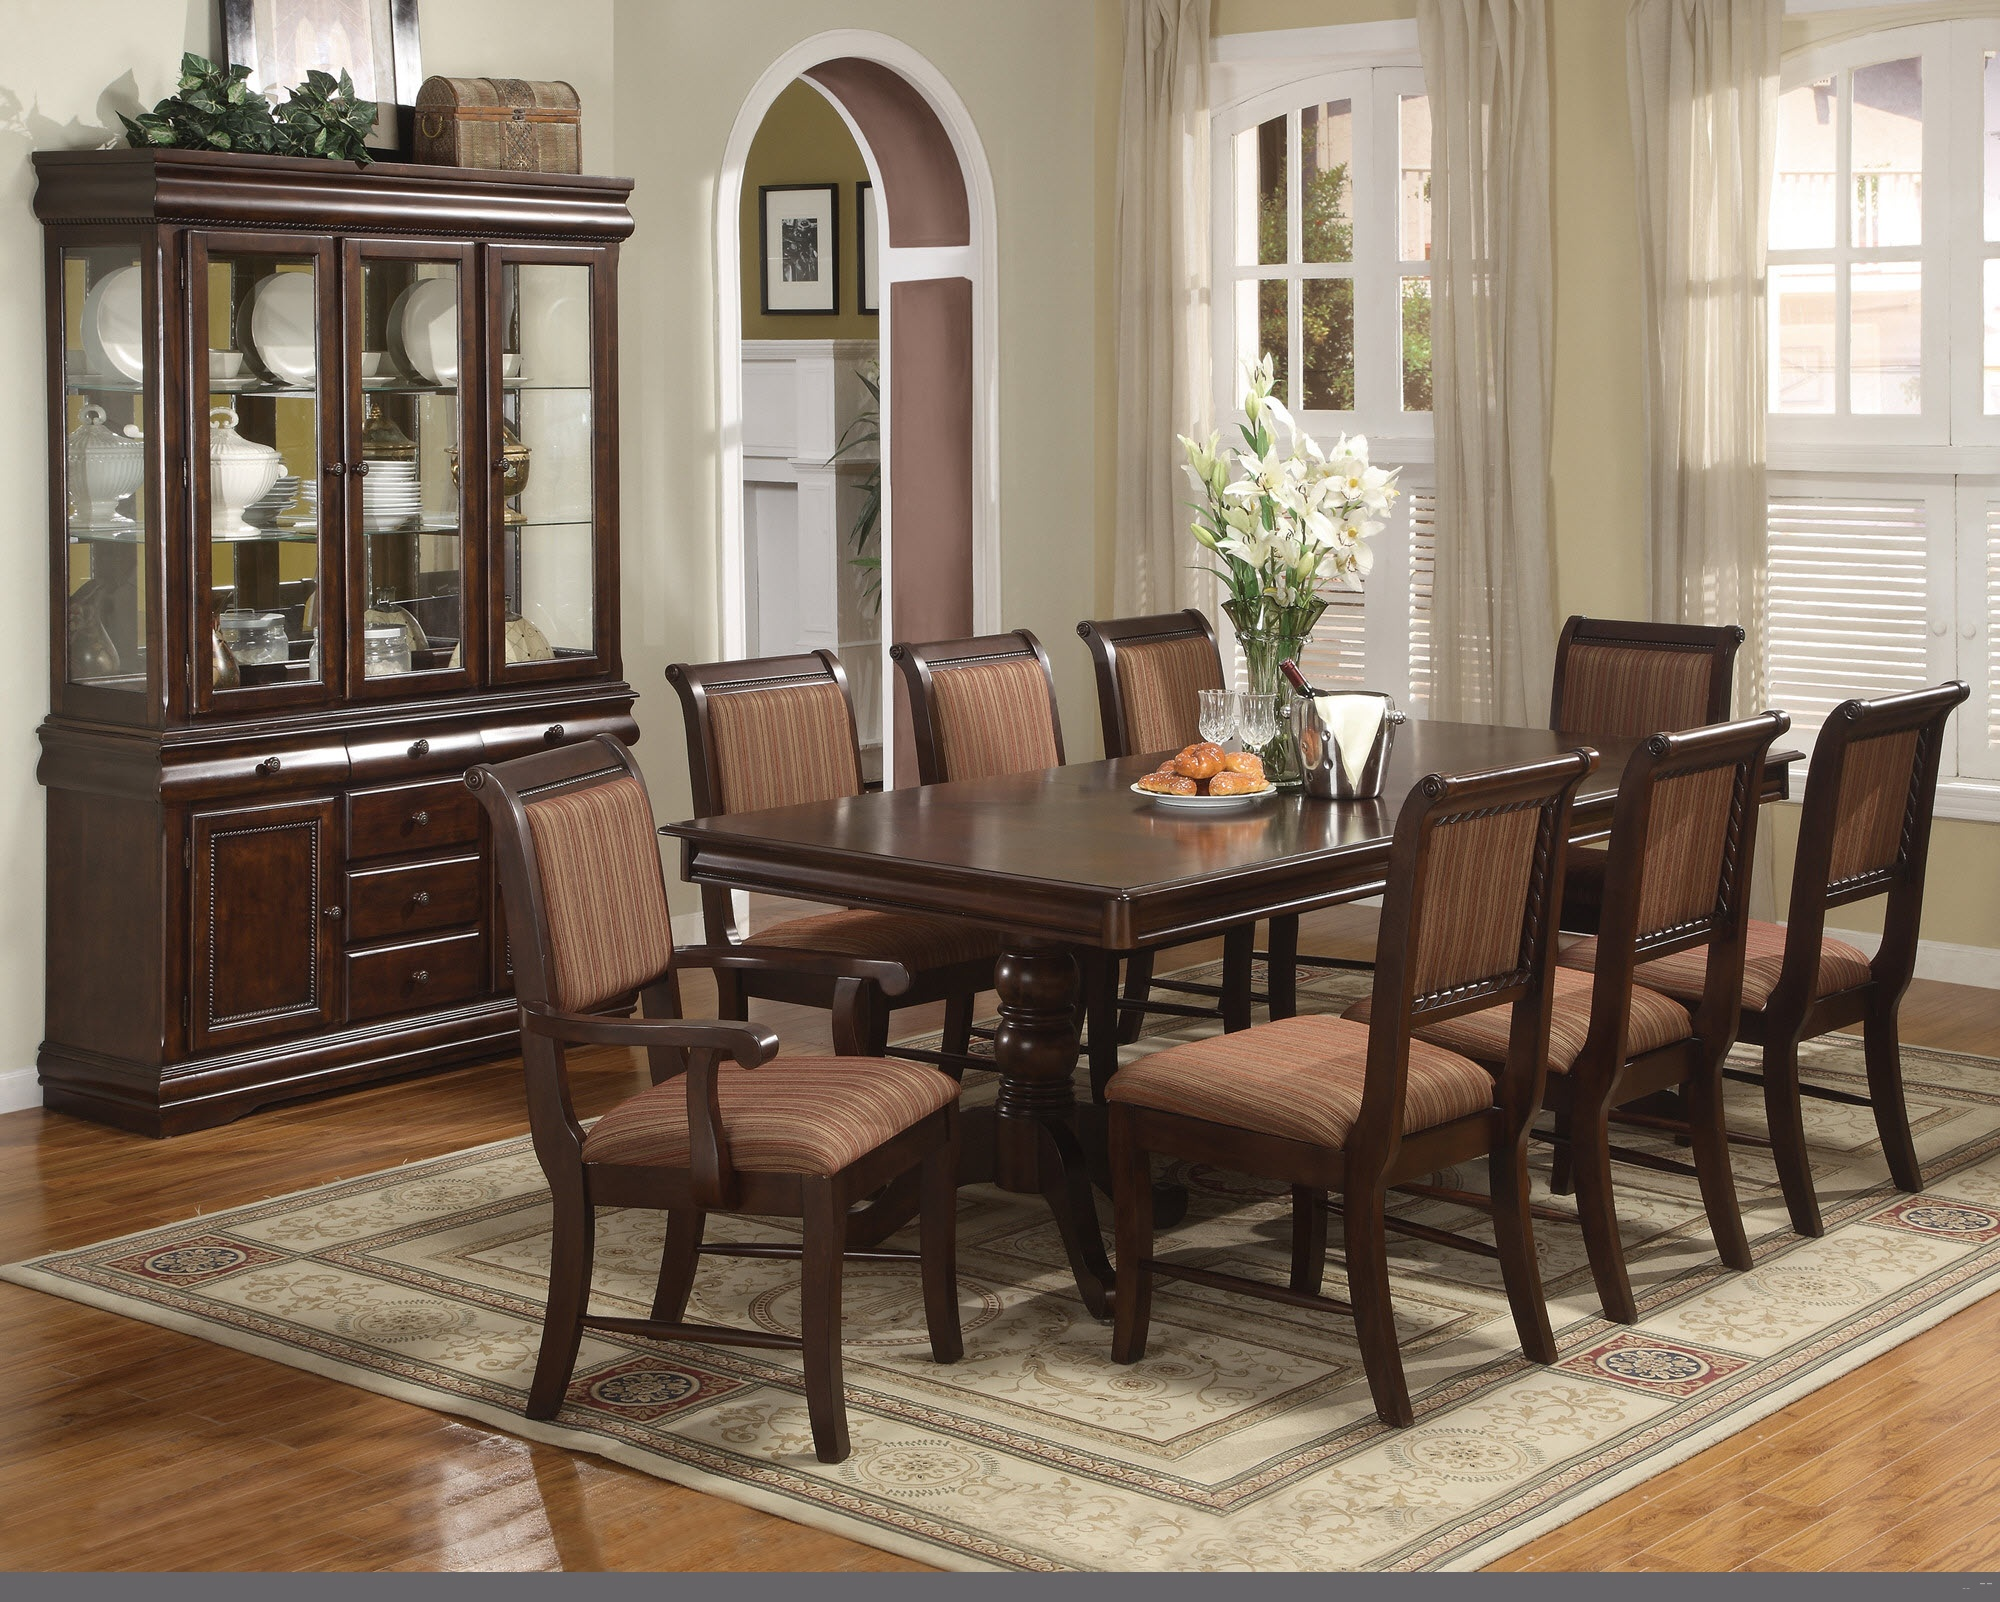 Best Formal Dining Room Sets For Home Design Classy With Buffet